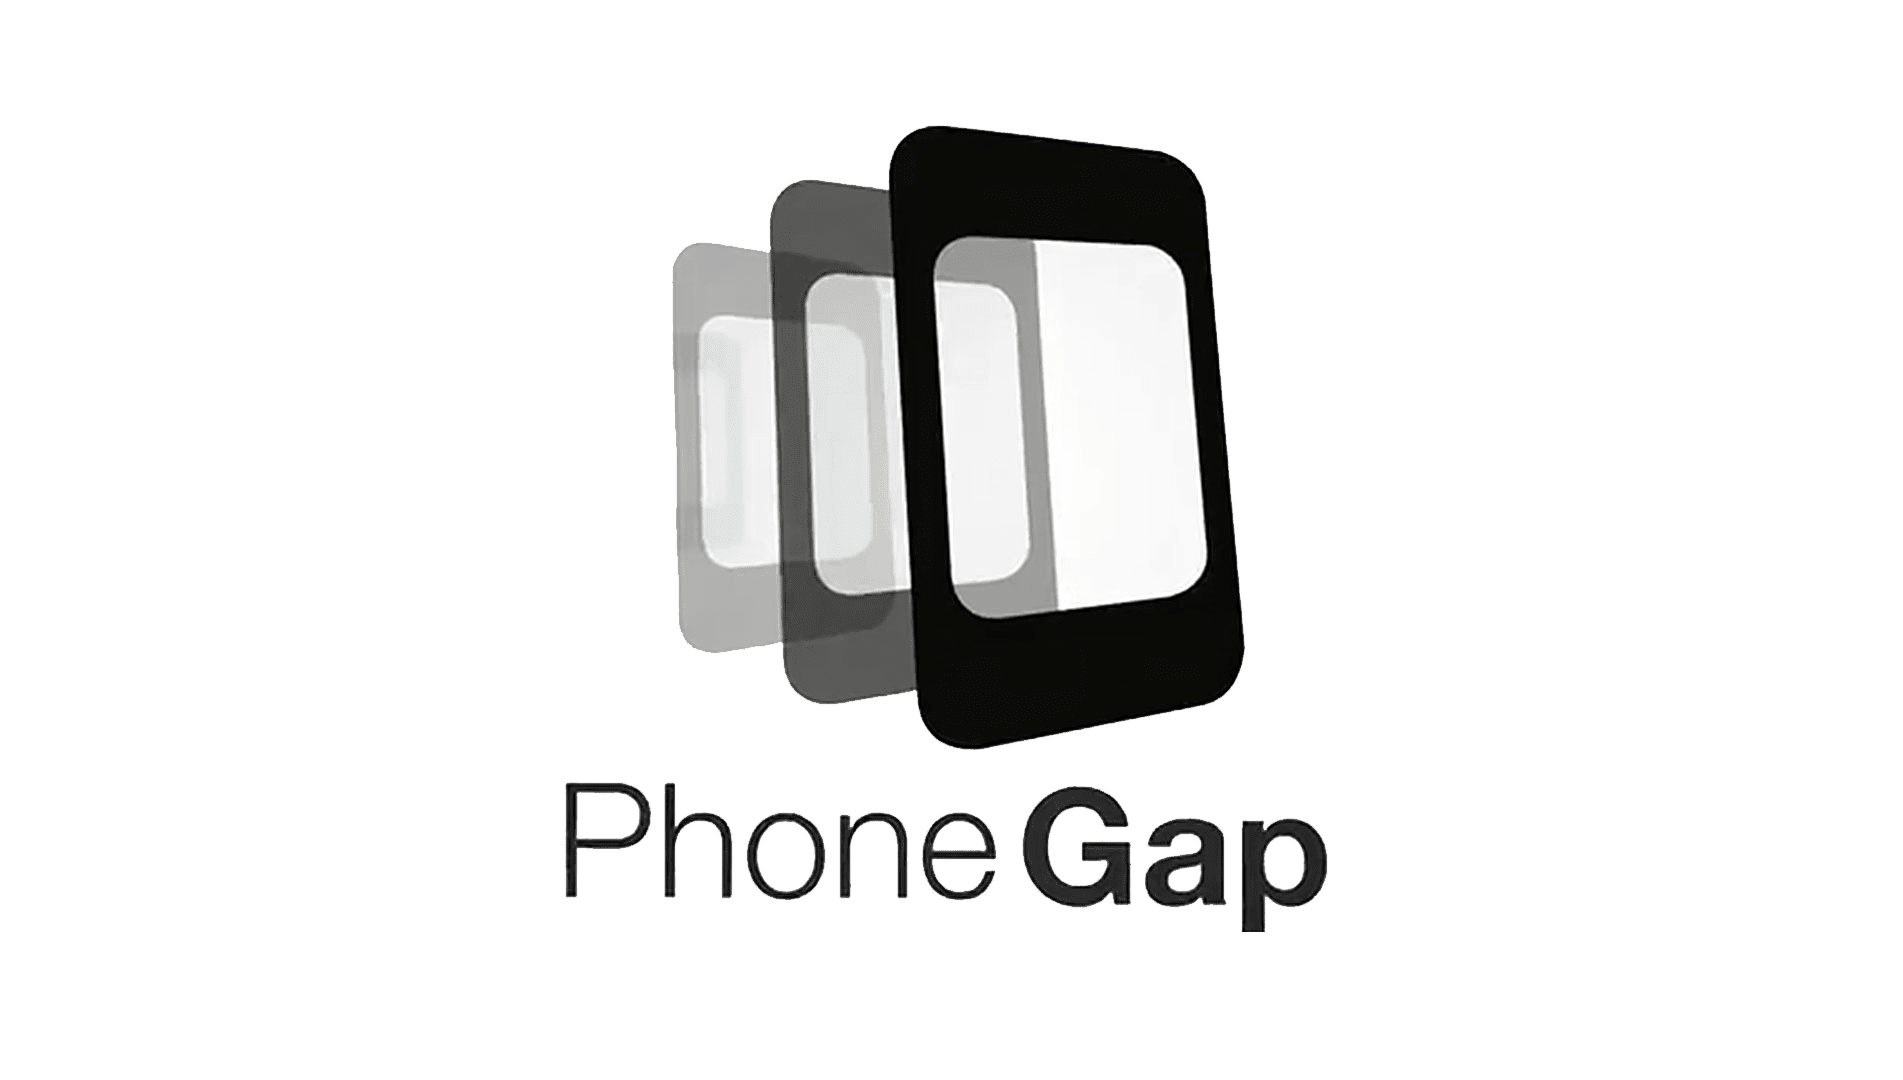 Top 5 Tools For Cross Platform Mobile Development Screenshots From Android Electric Toolkit Screenshot Of The Phonegap Logo